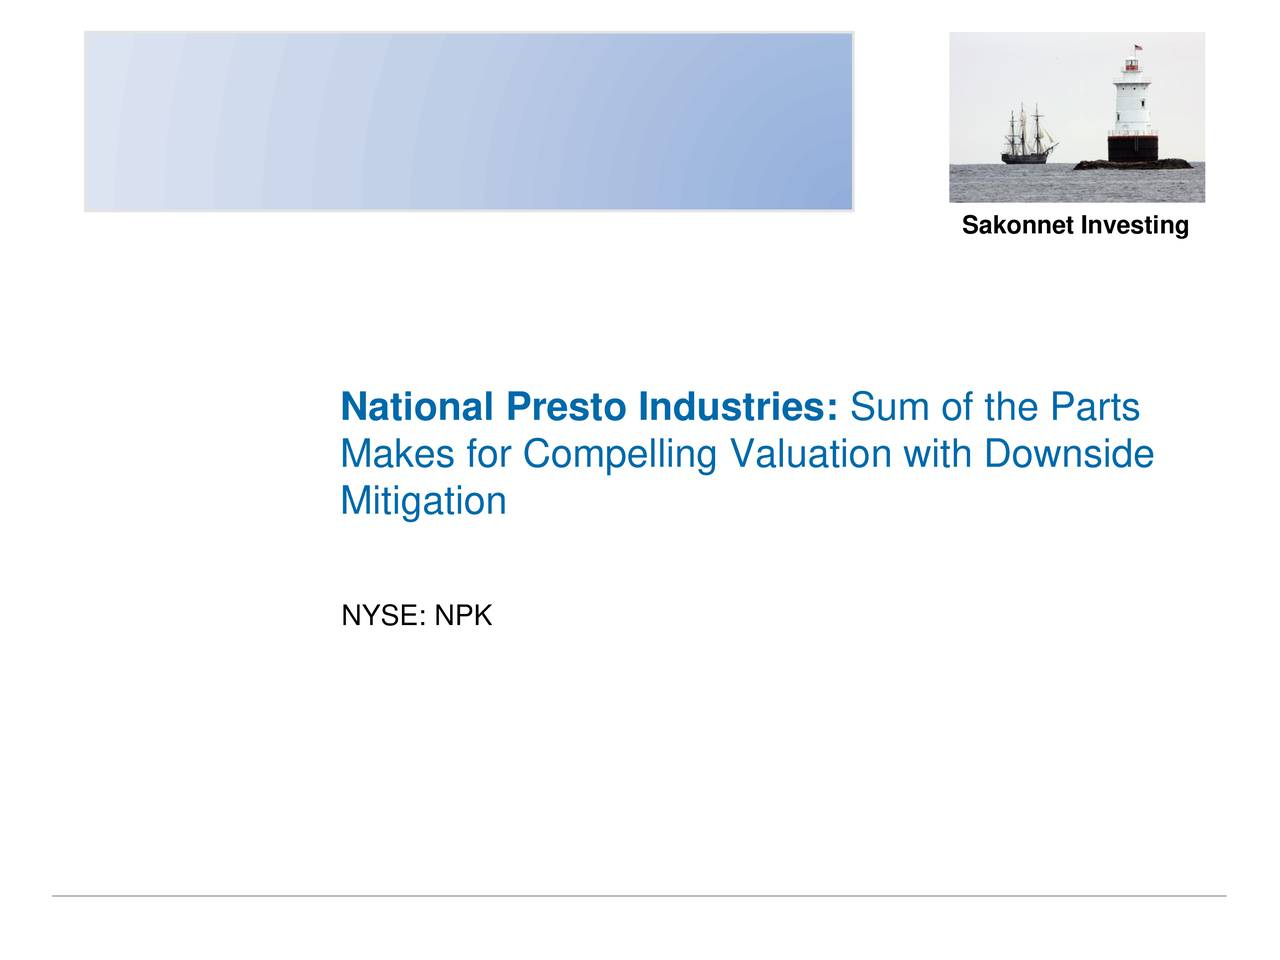 National Presto Industries: Sum of the Parts Makes for Compelling Valuation with Downside Mitigation NYSE: NPK